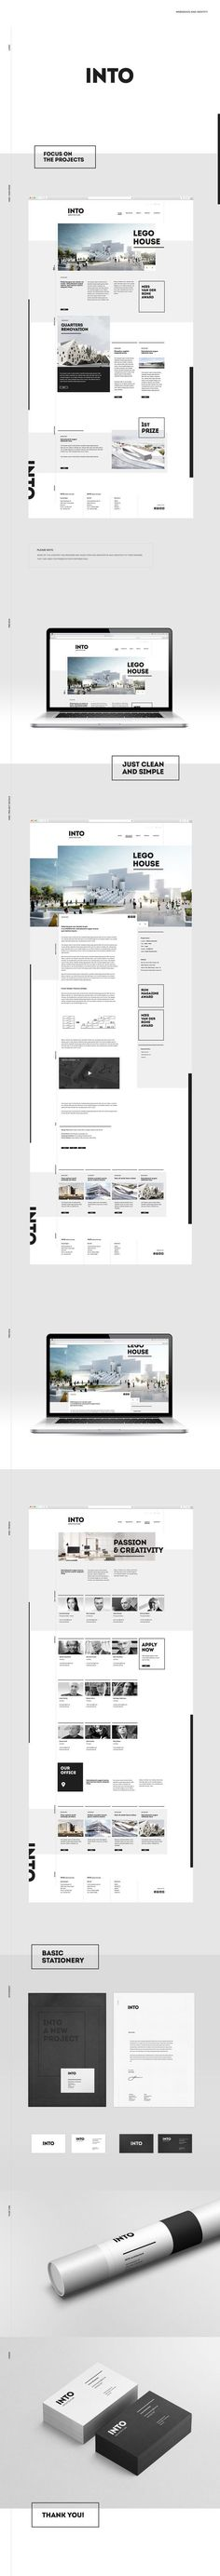 Simple Clean Minimalist Website Collection. Get similar web…  Latest News & Trends on #webdesign | http://webworksagency.com